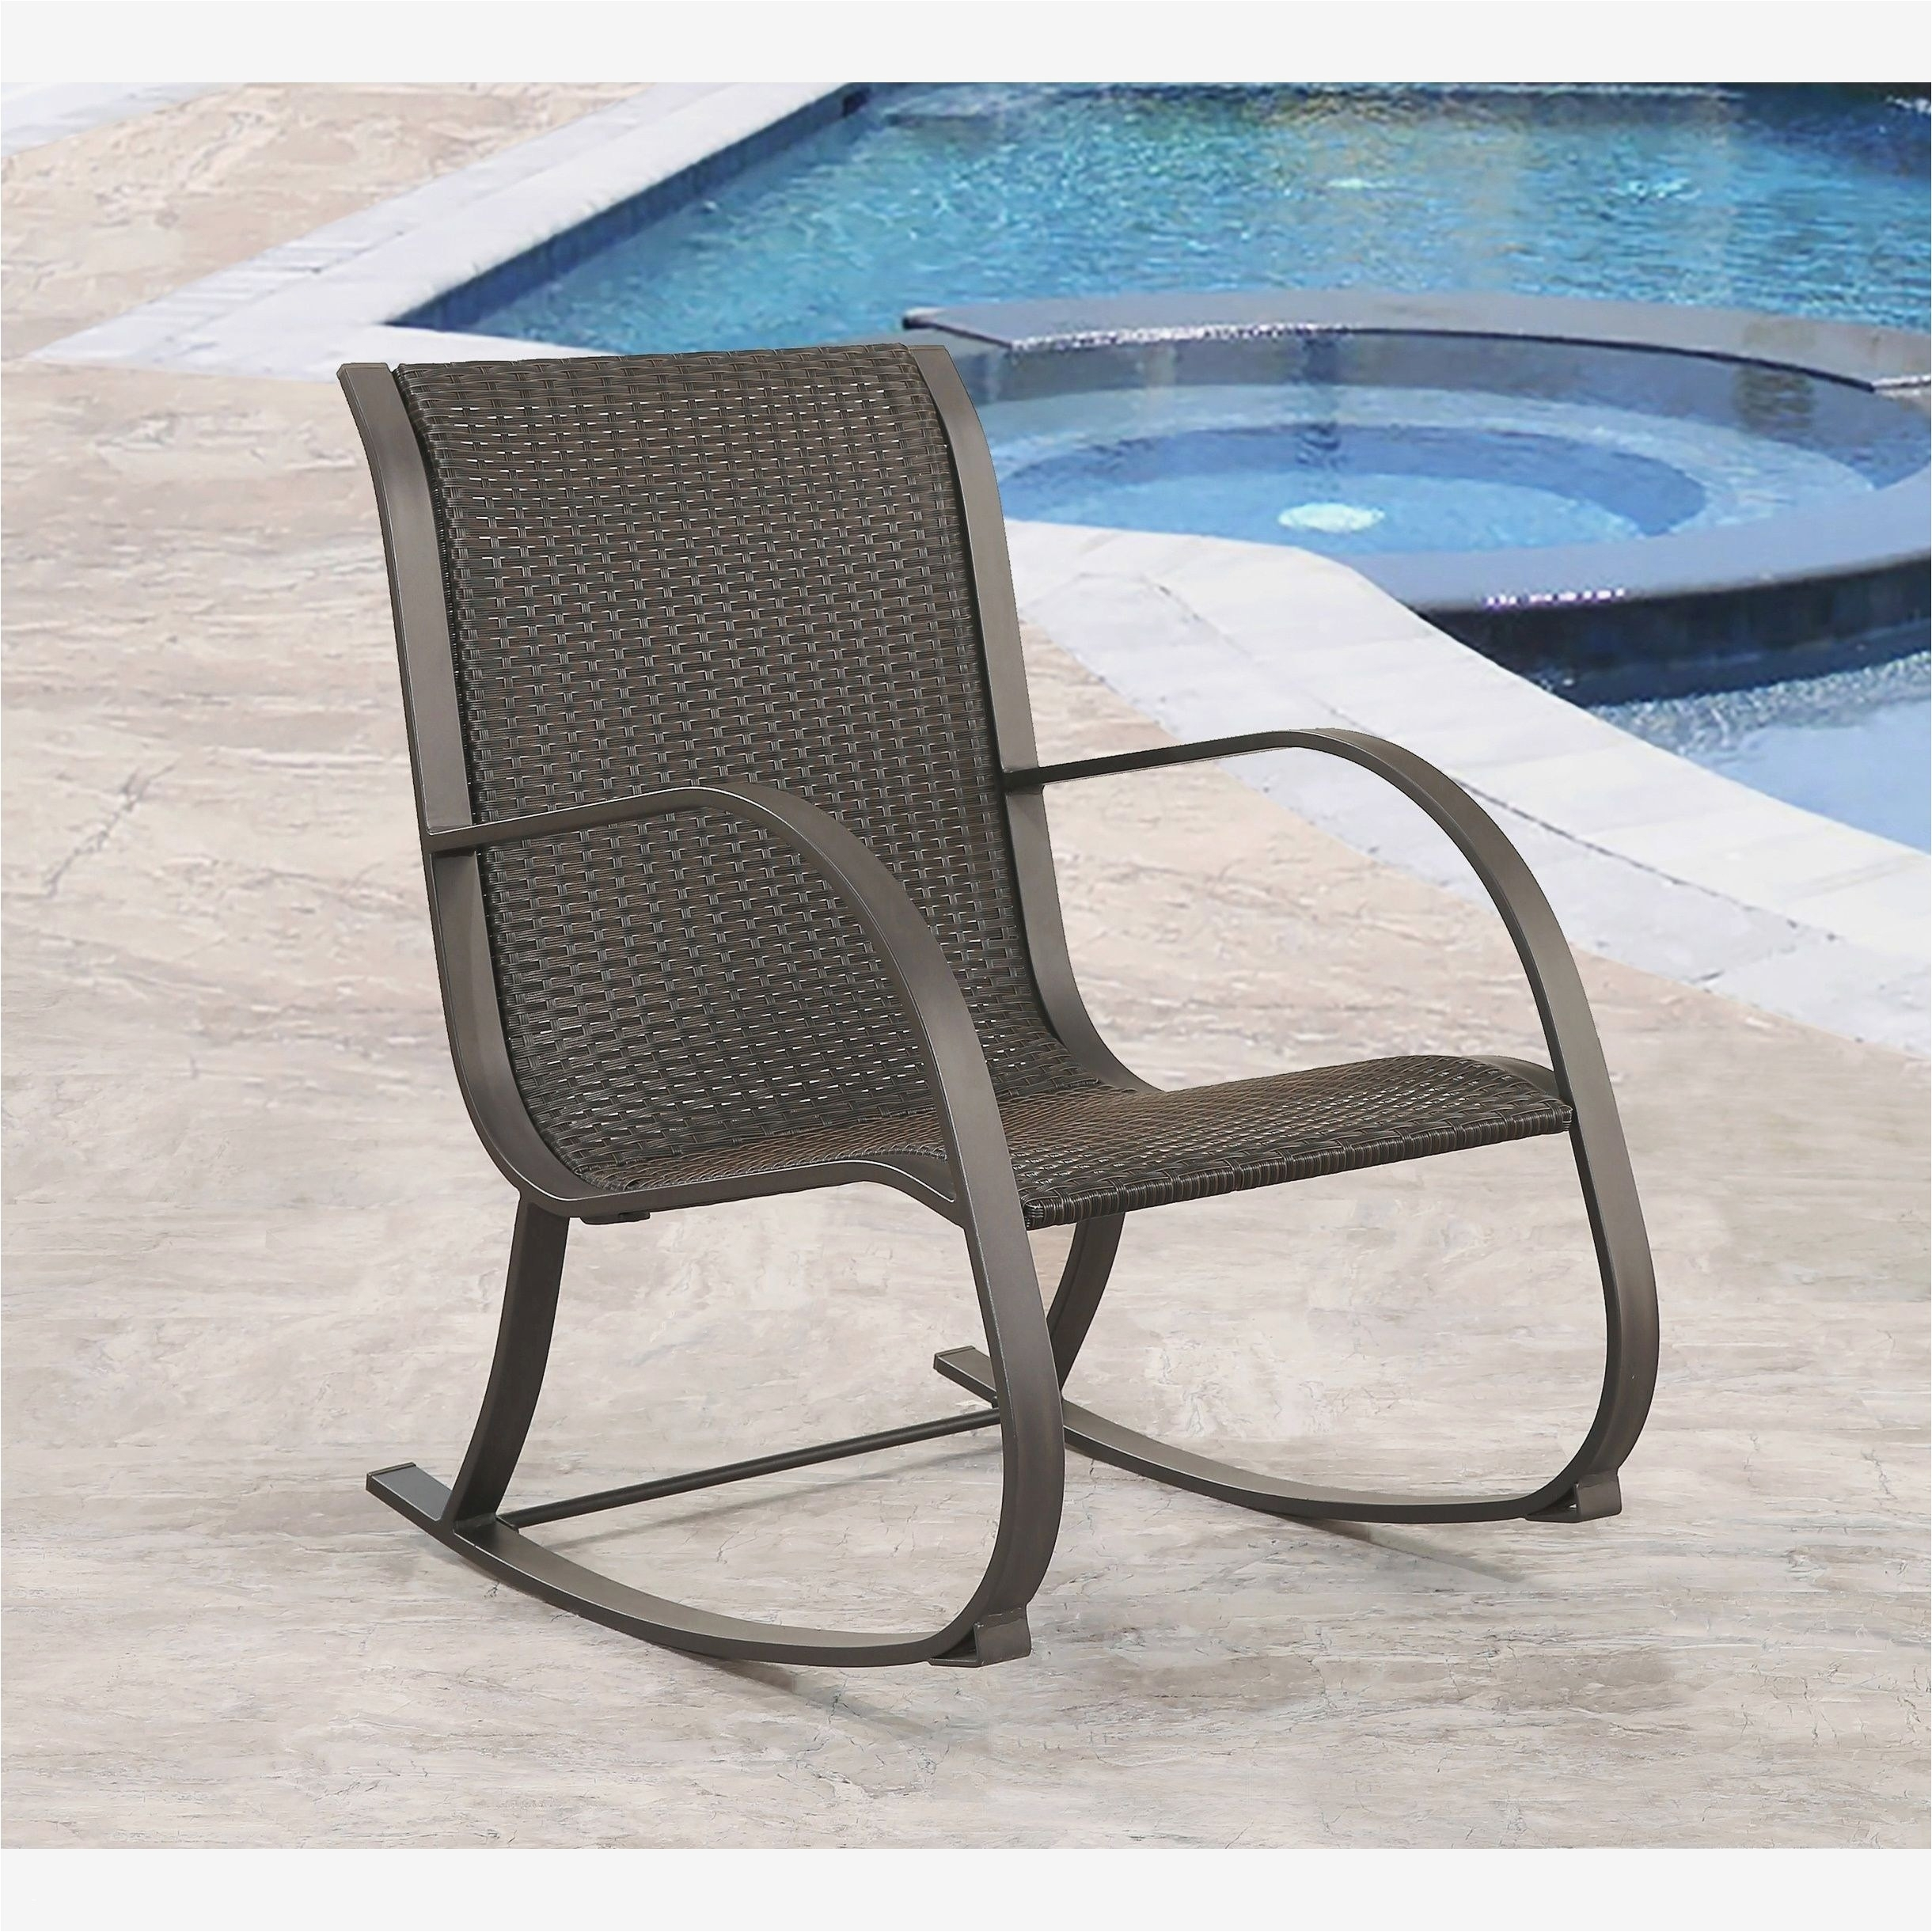 Awesome Rocking Chairs Patio Furniture Bellevuelittletheatre Ideas In Modern Patio Rocking Chairs (View 9 of 15)